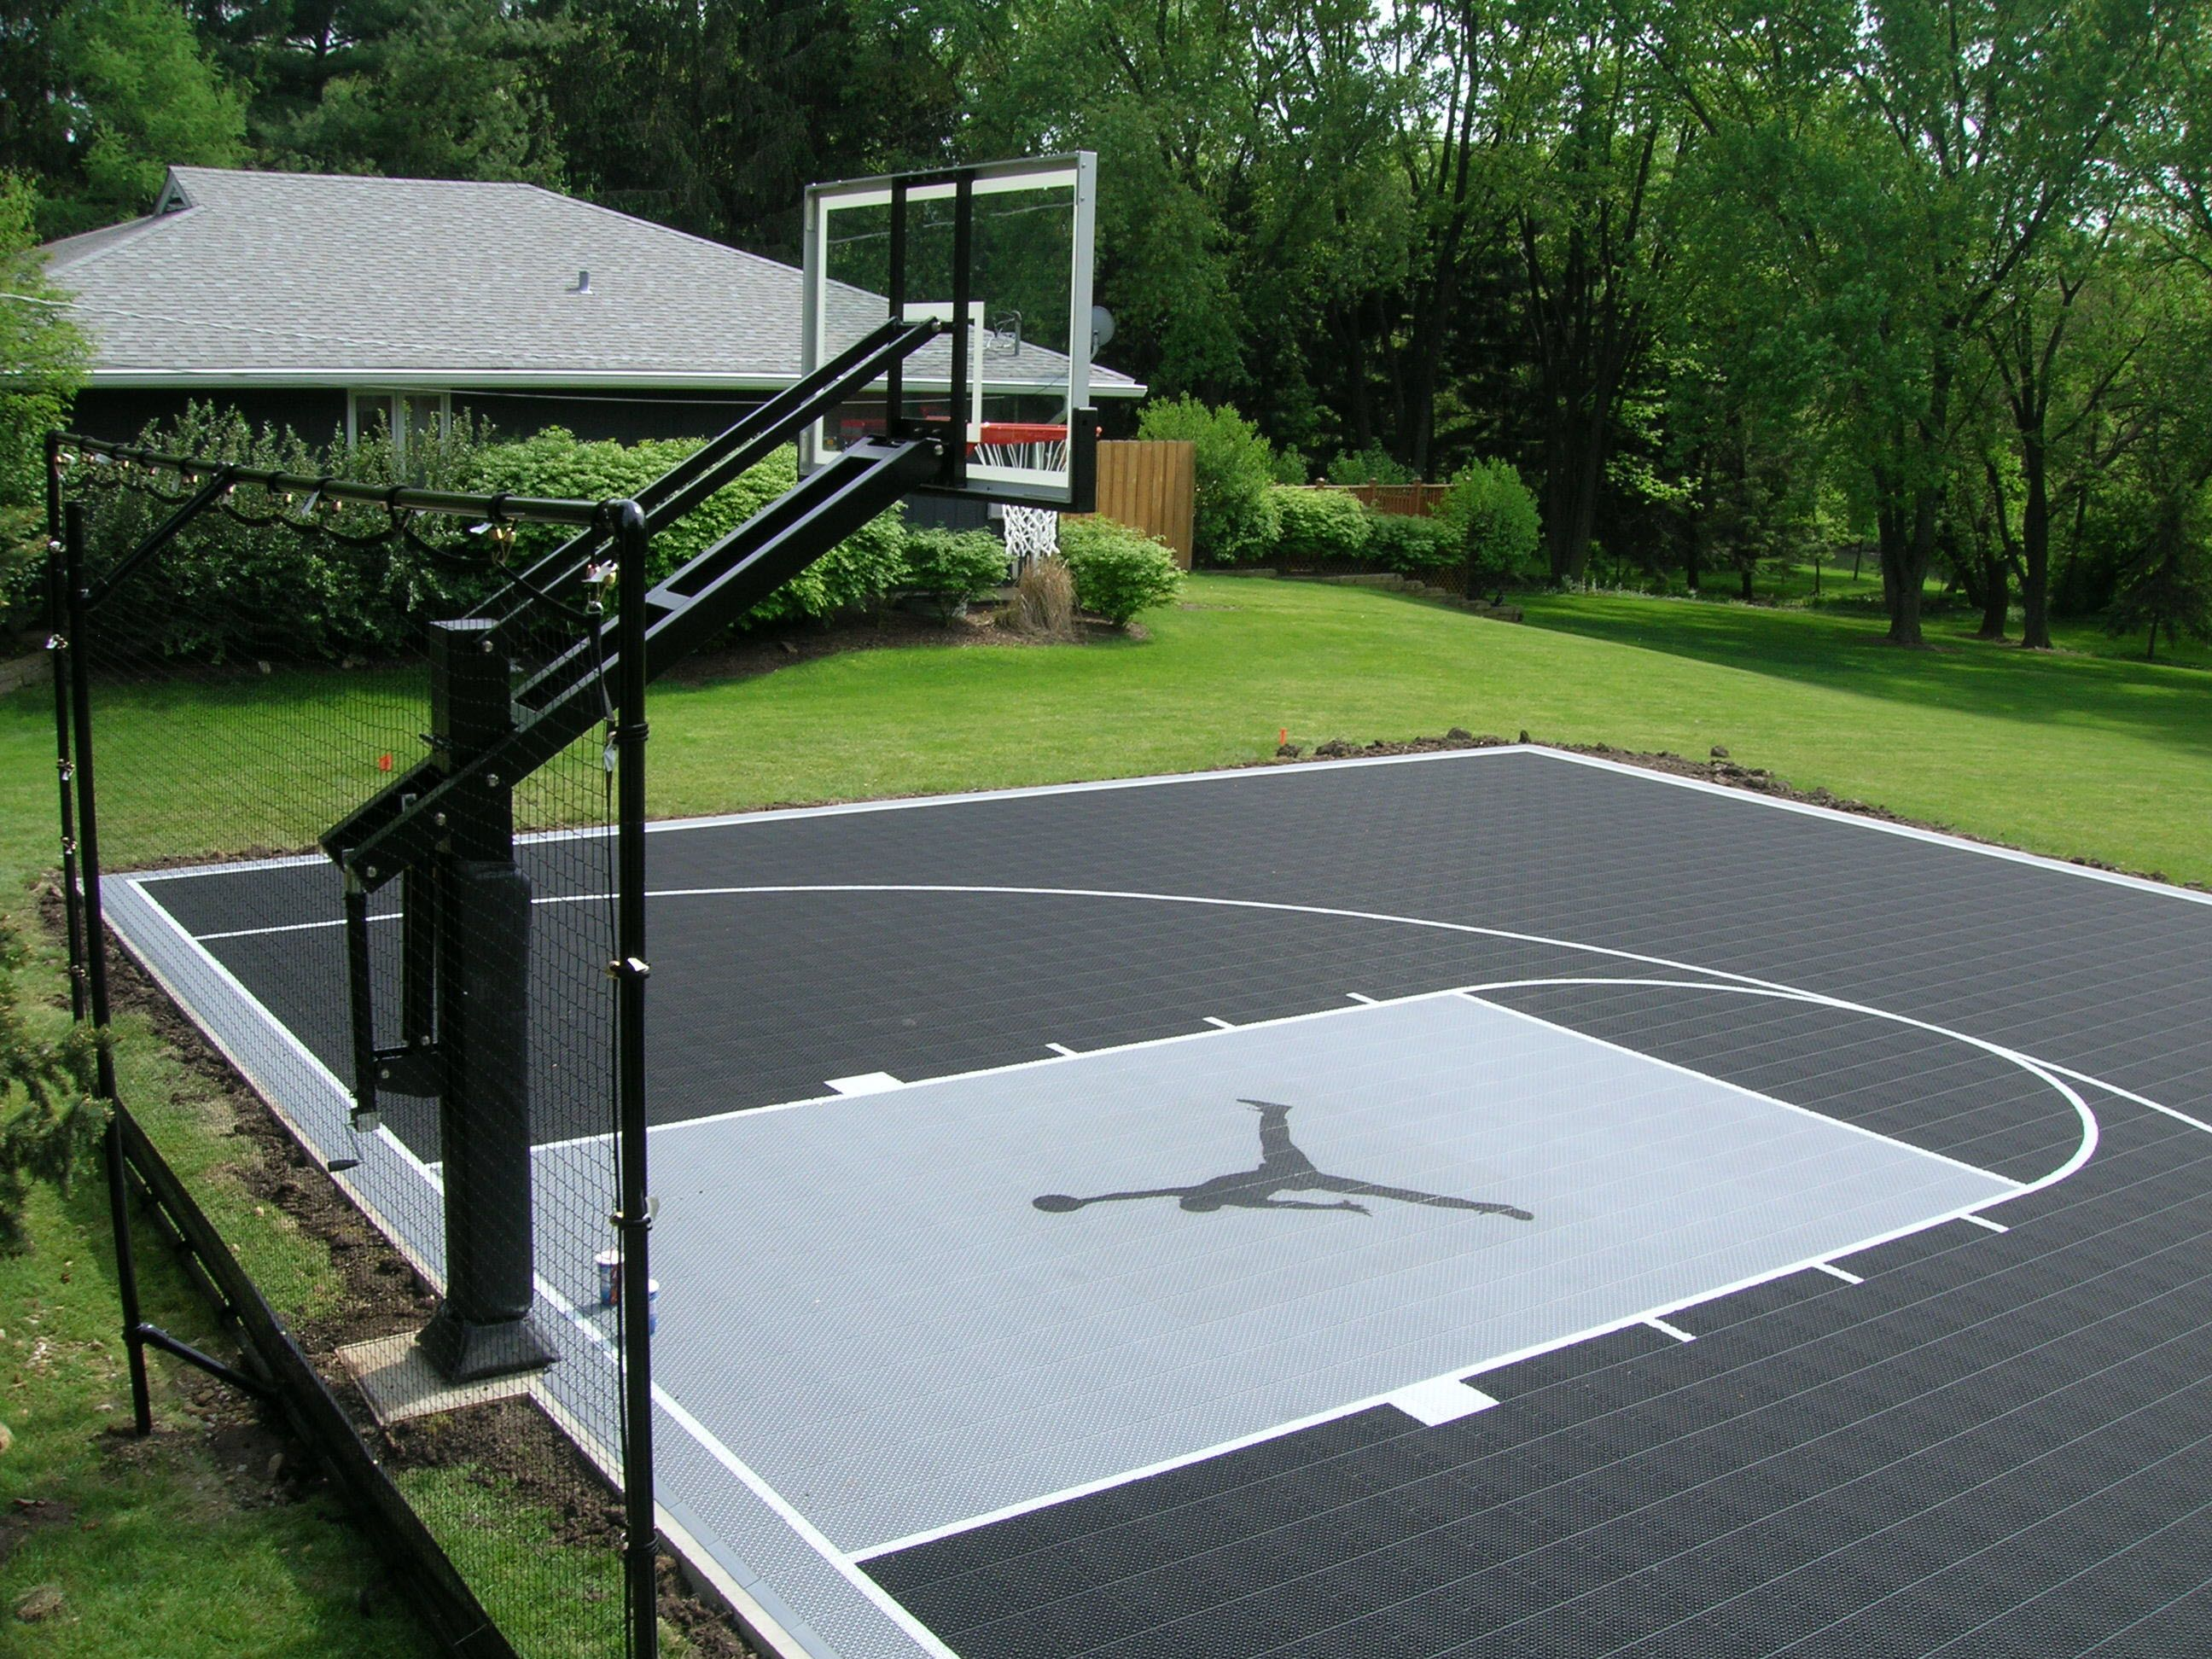 Comment Fabriquer Un Terrain De Basket top 13 backyard basketball courts | terrain de basket